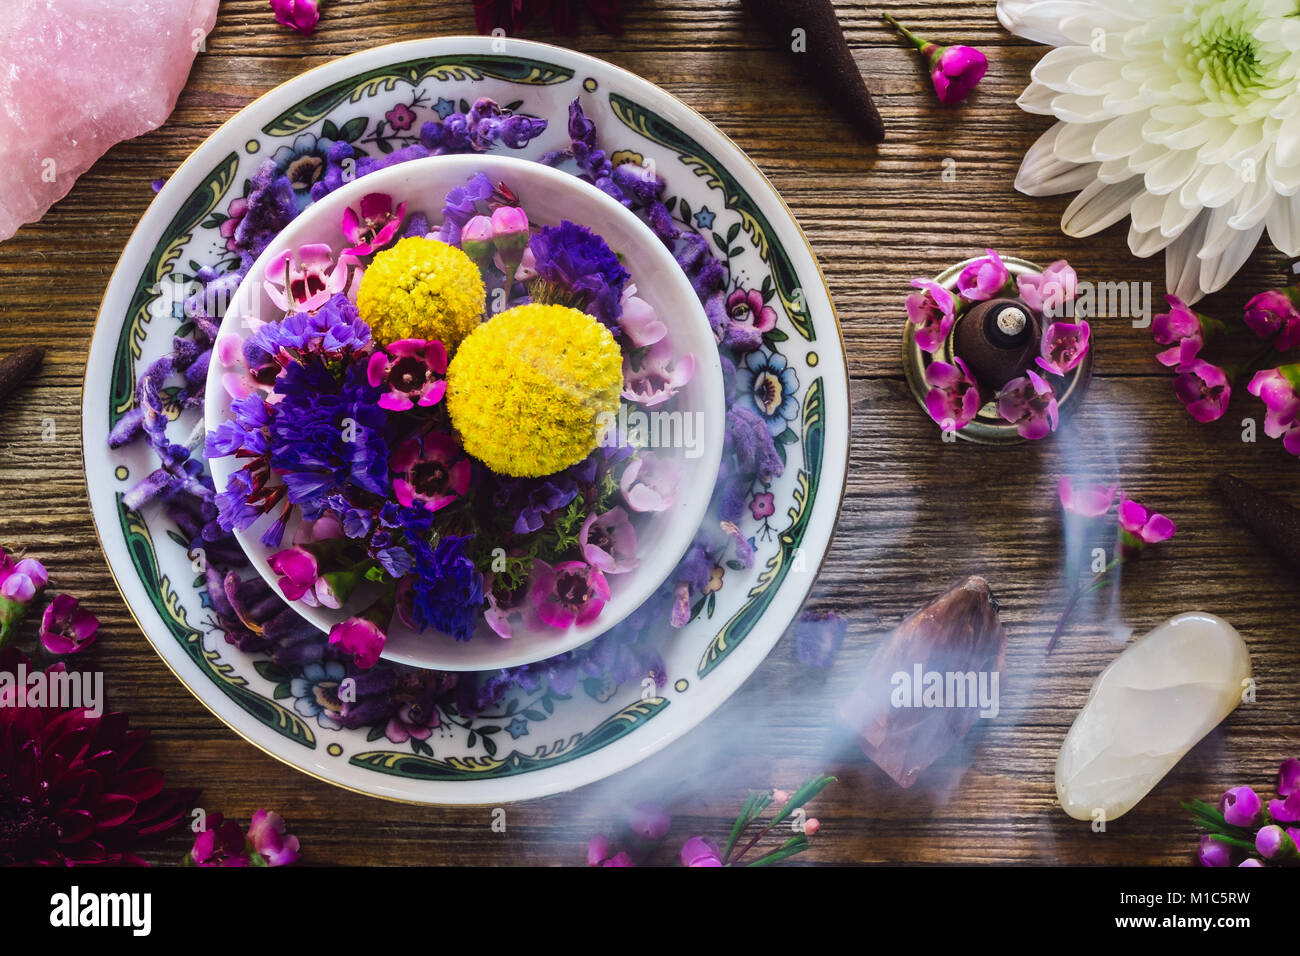 Table with Plate of Flowers, Rose Quartz, Moonstone and Incense. - Stock Image